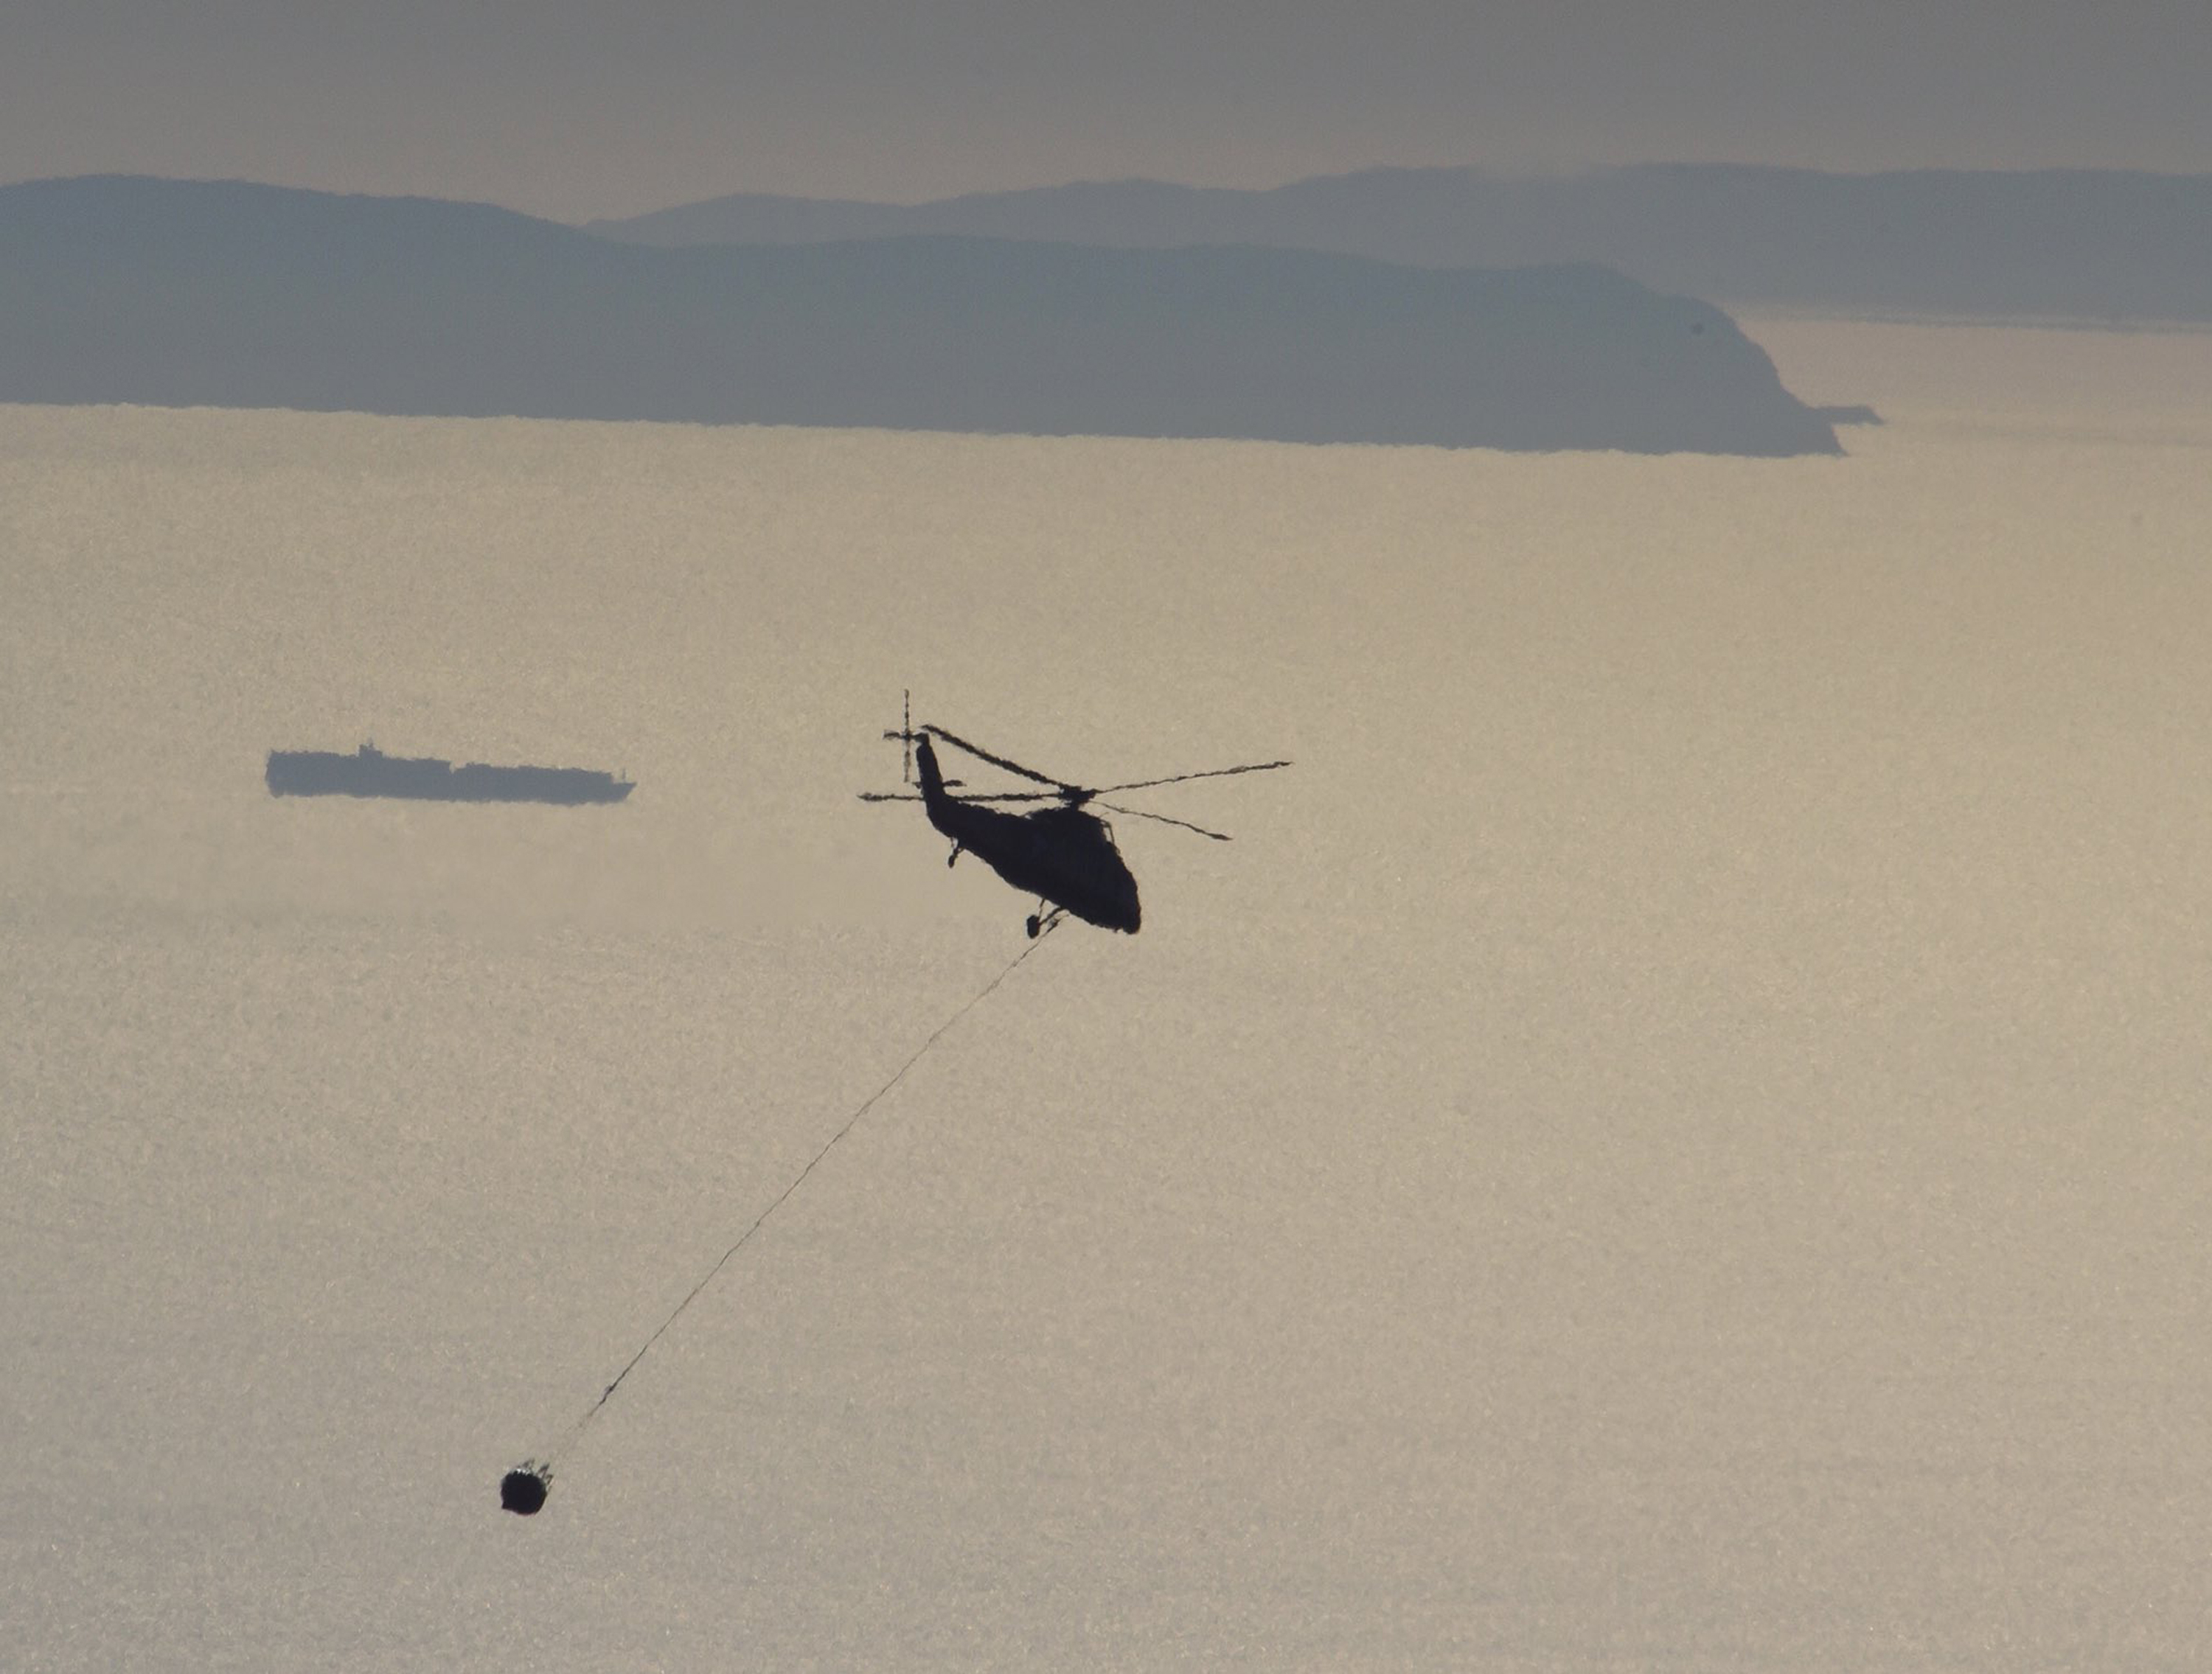 In this photo provided by the Santa Barbara County Fire Department, a pilot takes his firefighting helicopter back to fill its bucket with water while working near Gibraltar Road in Santa Barbara, Calif., Tuesday, Dec. 19, 2017. In the distance, the cargo ship Ever Envoy transits the Santa Barbara Channel with Santa Cruz and Santa Rosa Island behind. Officials estimate that the Thomas Fire will grow to become the biggest in California history before full containment, expected by Jan. 7. (Mike Eliason/Santa Barbara County Fire Department via AP)